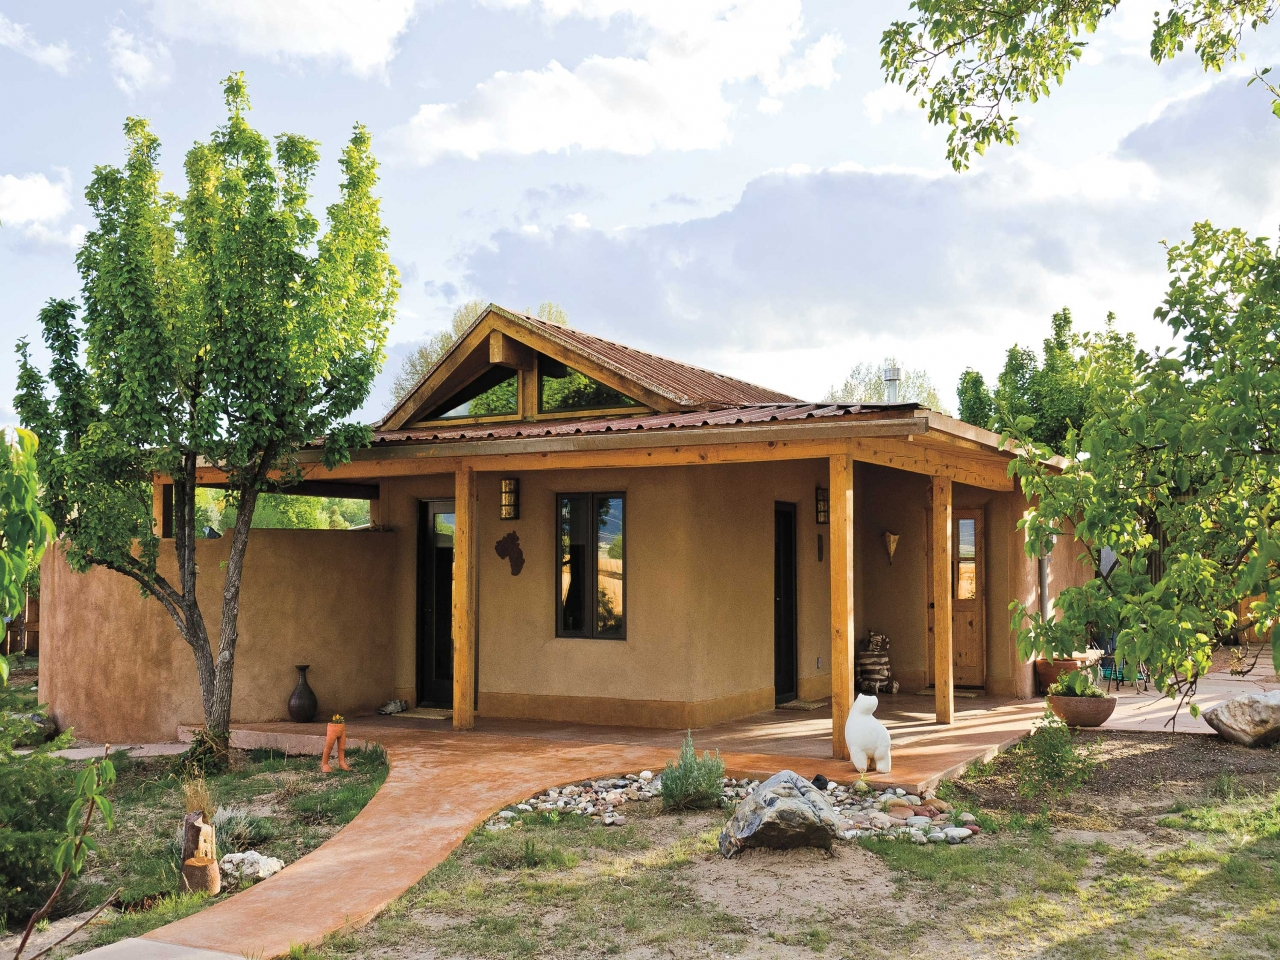 Adobe clay houses building adobe homes simple homes to for How to build adobe homes